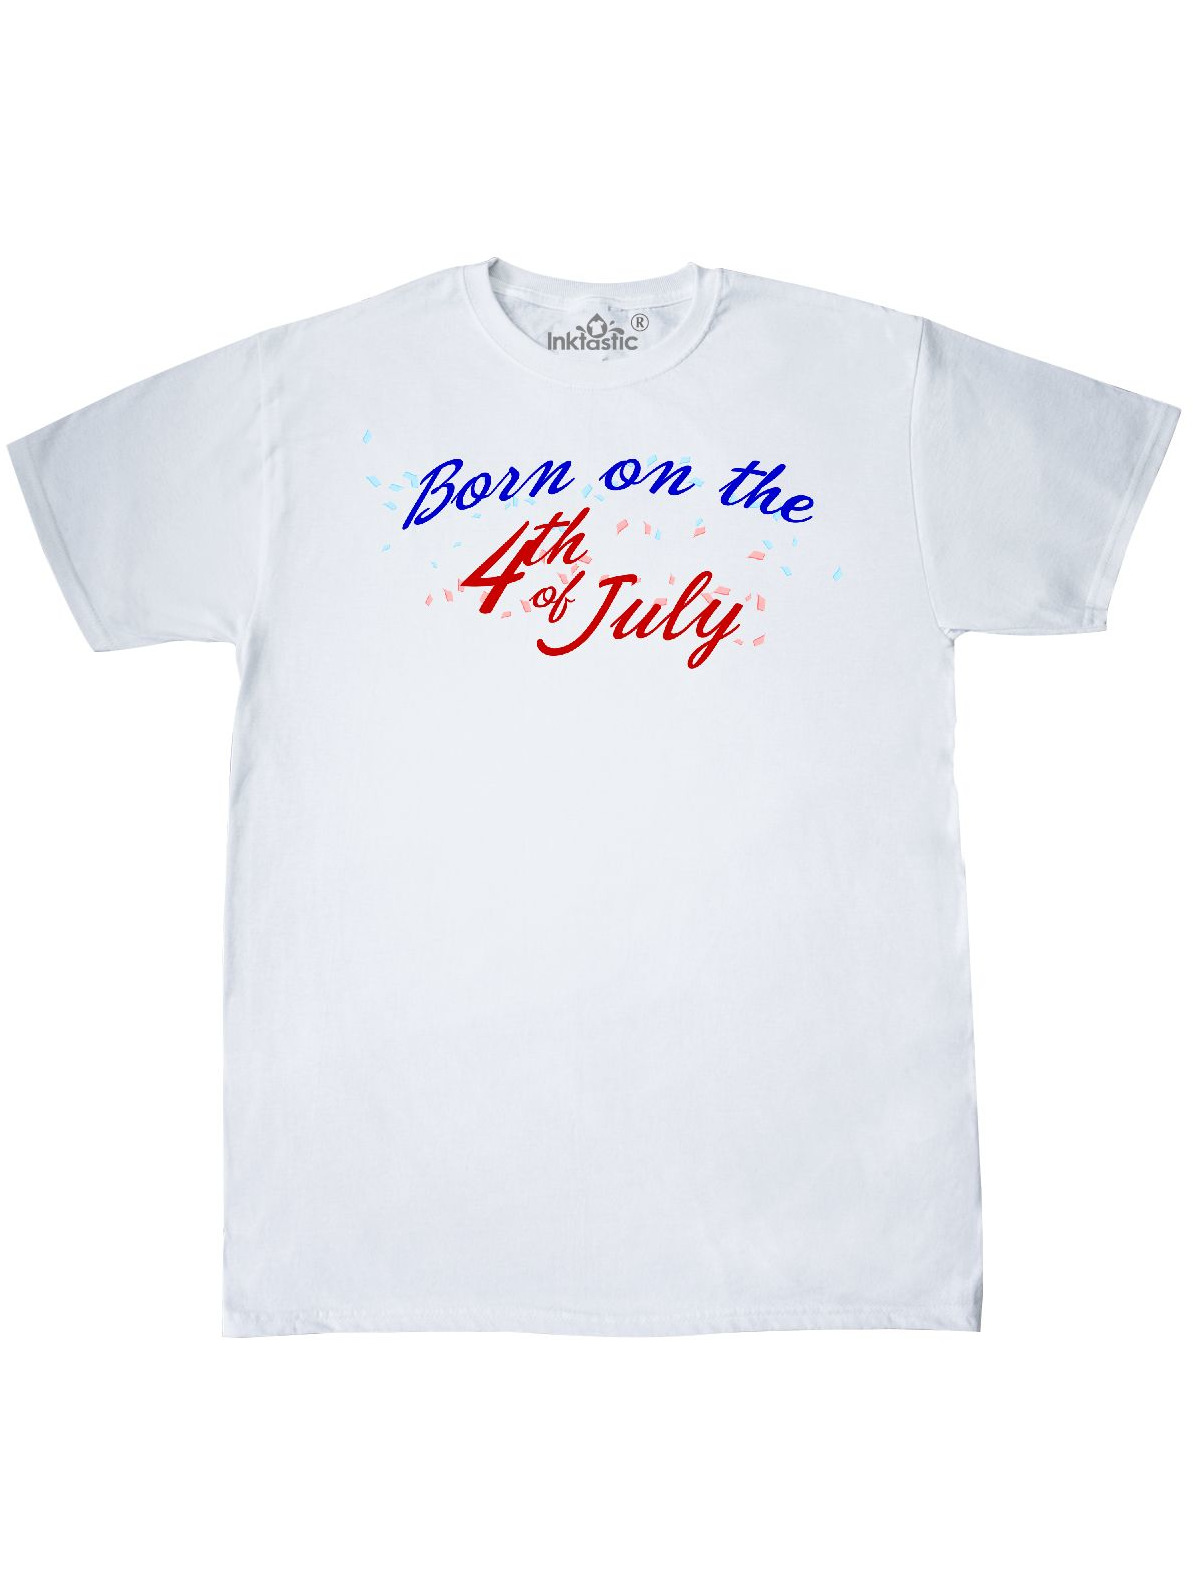 Fourth Of July Shirts Walmart : fourth, shirts, walmart, INKtastic, T-Shirt, Walmart.com